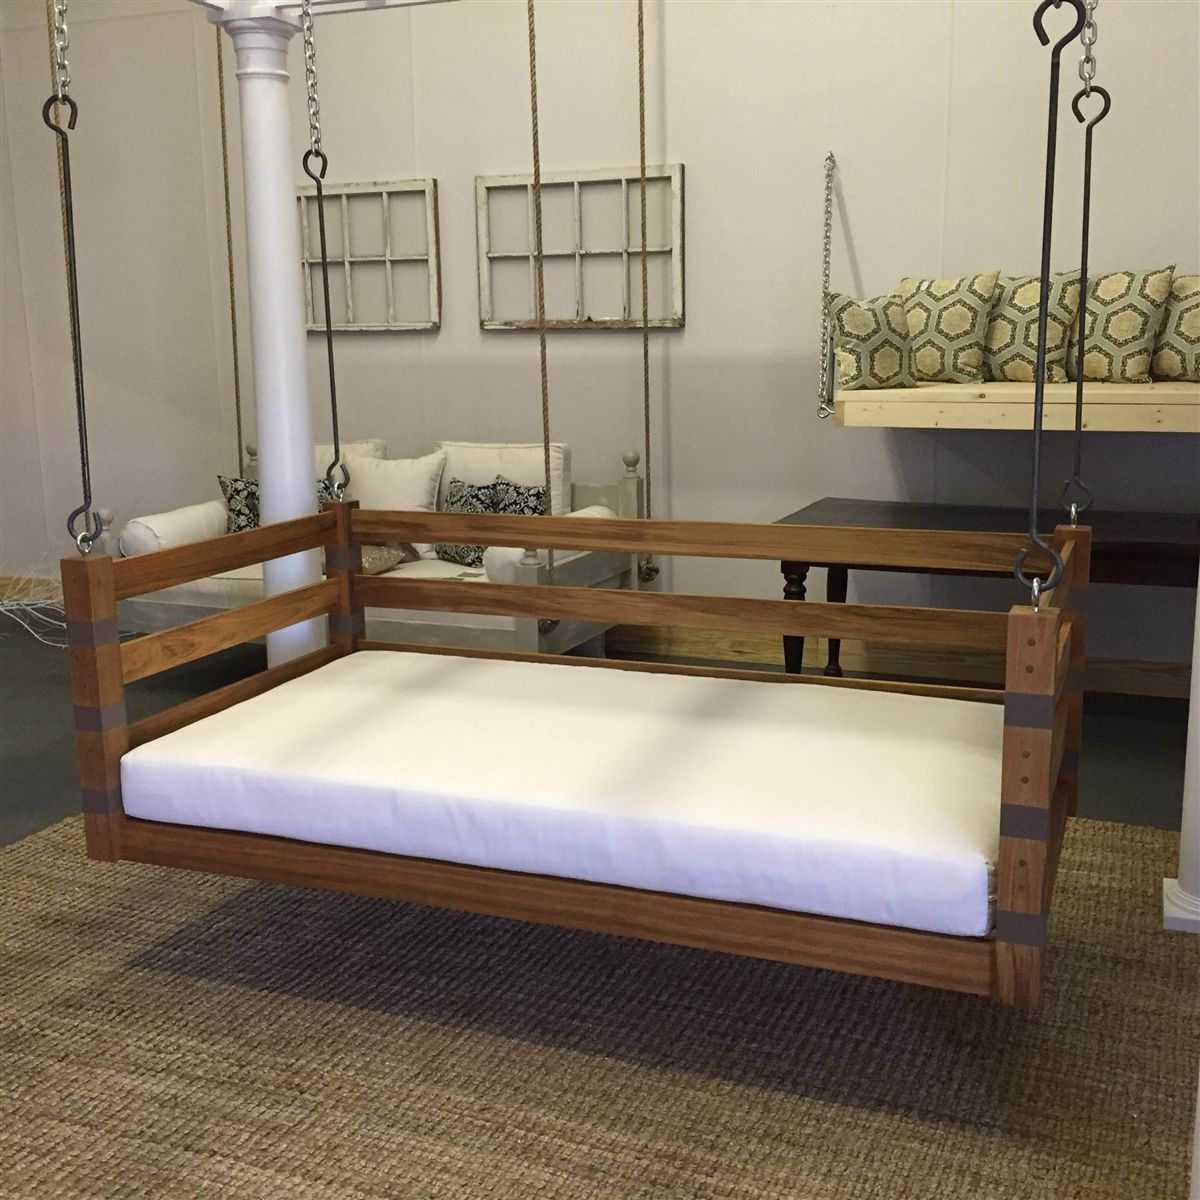 Design Swinging Beds the ion not your average porch swing our beds are hand built